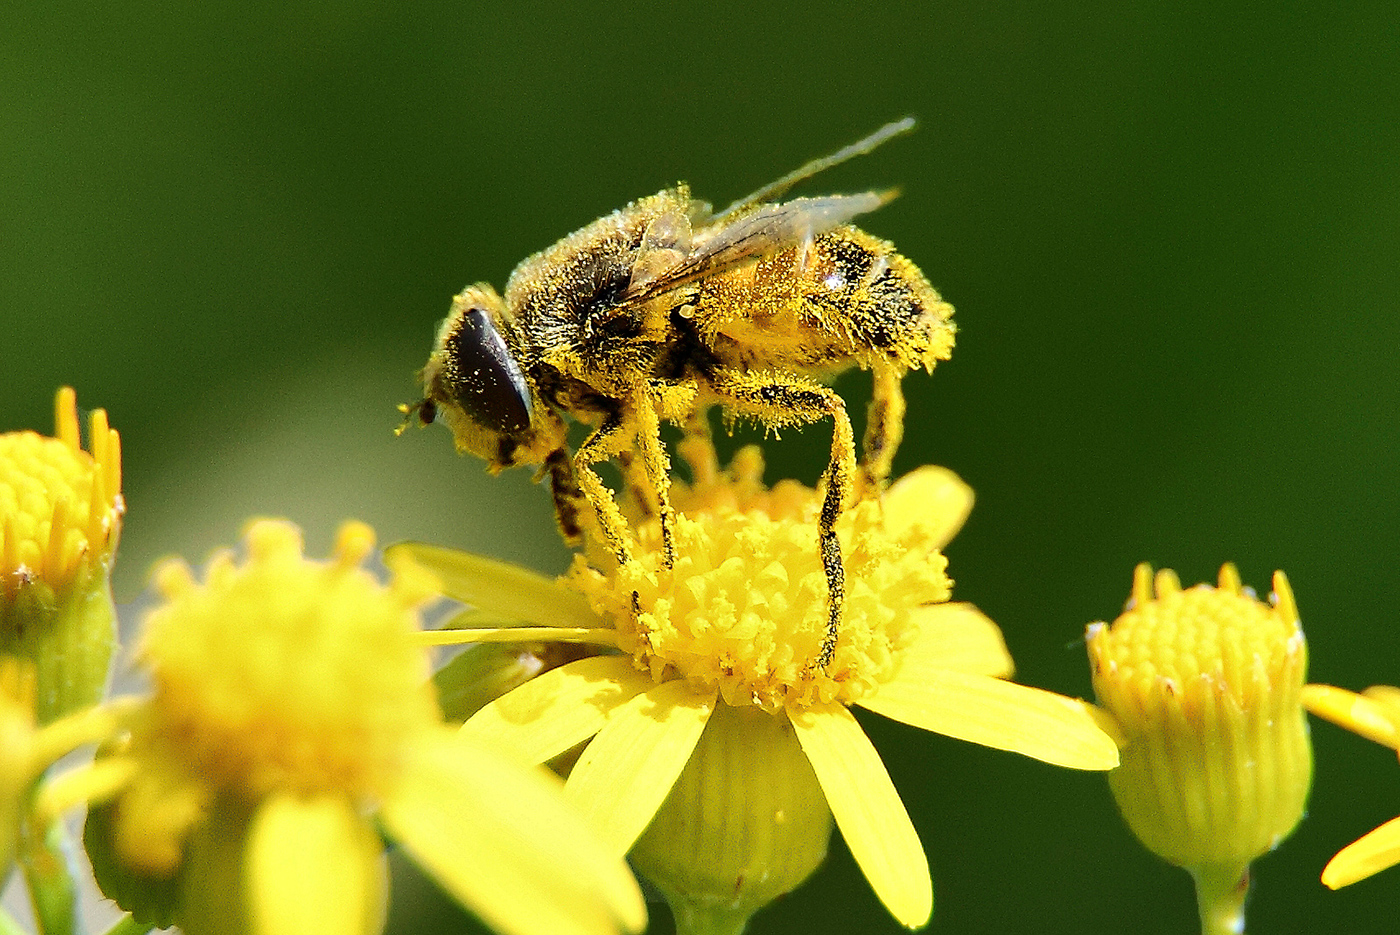 Bee covered in yellow dust, pollen, crouches atop small yellow flower.